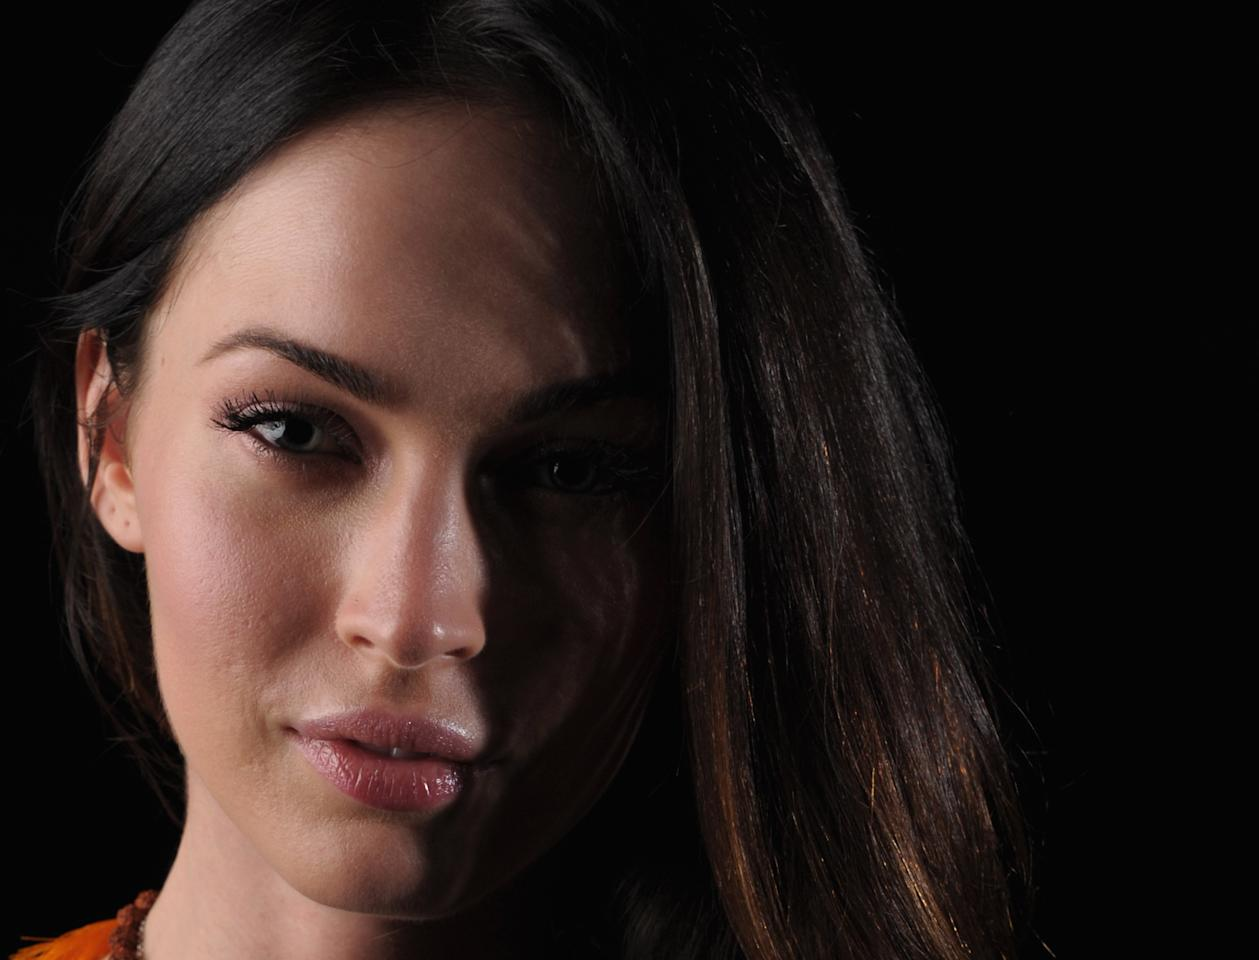 WAILEA, HI - JUNE 15:  Actress Megan Fox poses for a portrait at the 2011 Maui Film Festival at the Celestial Cinema on June 15, 2011 in Wailea, Hawaii.  (Photo by Michael Buckner/Getty Images For Maui Film Festival)